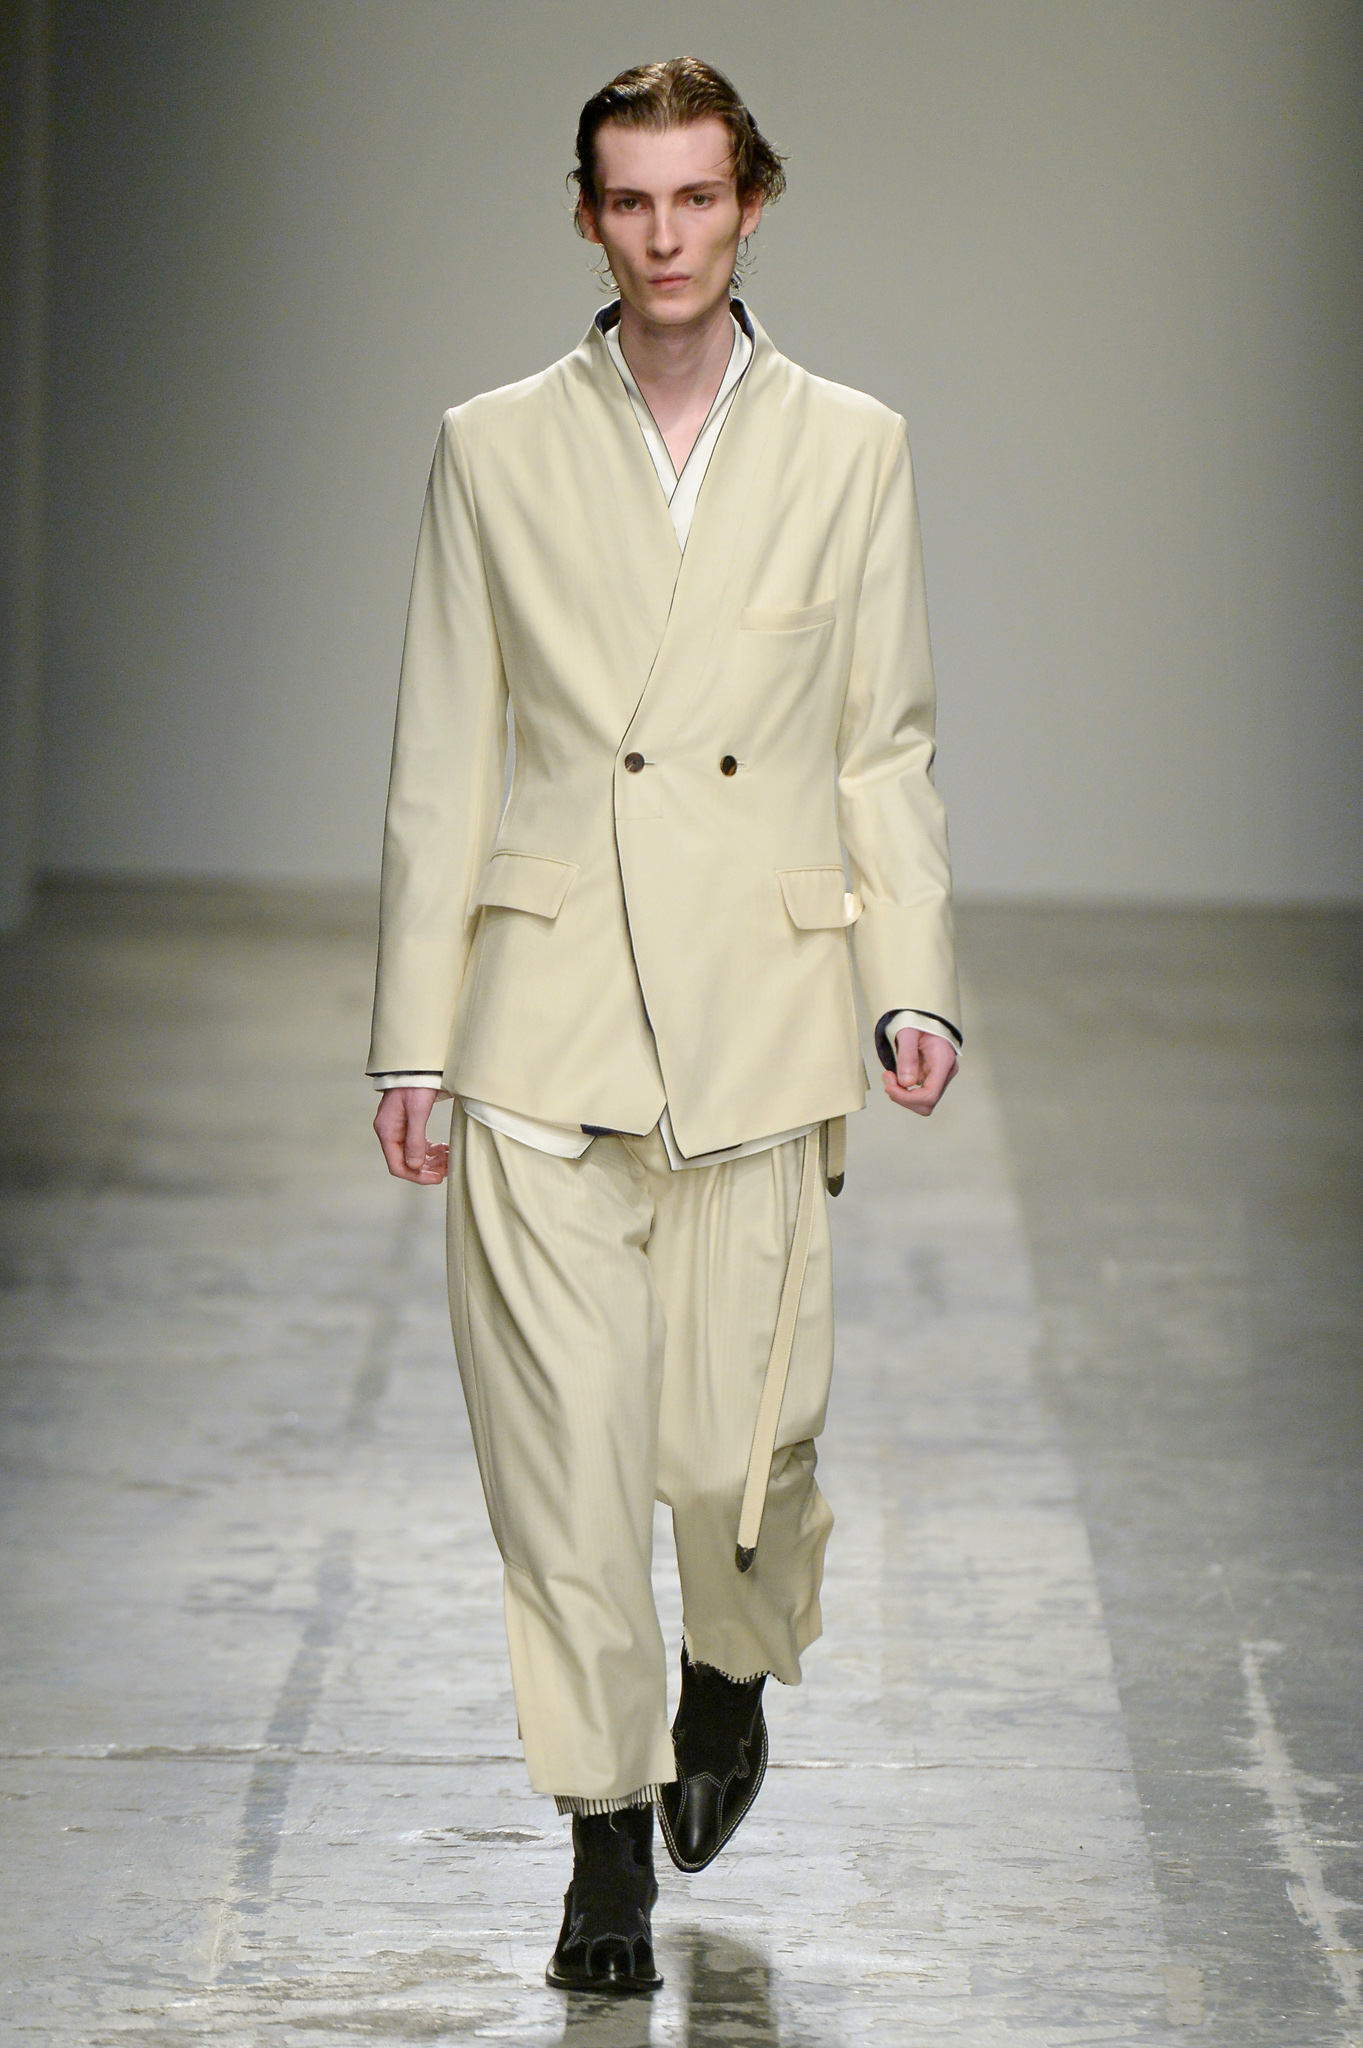 Bed J.W. Ford Men's Fall 2019